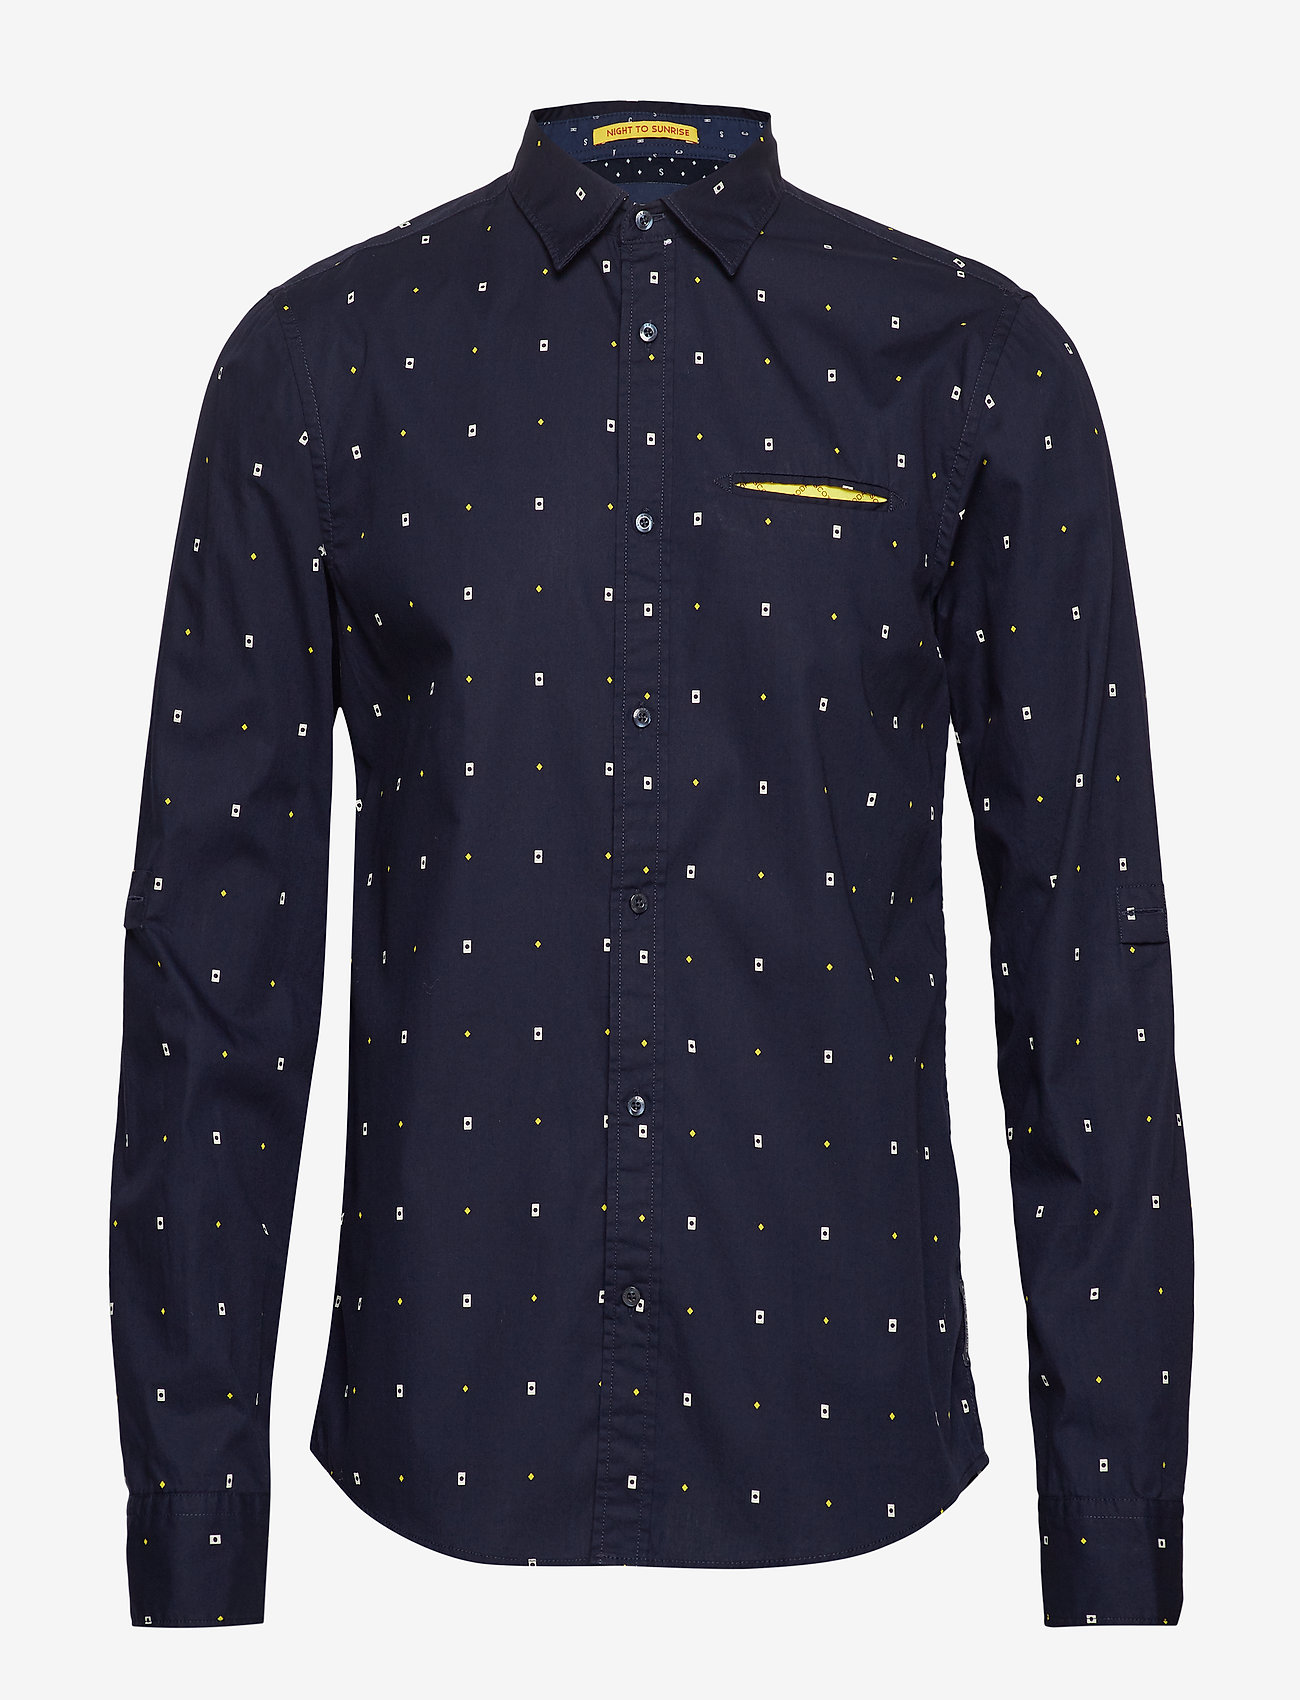 Scotch & Soda - REGULAR FIT- Classic all-over printed pochet shirt - chemises d'affaires - combo a - 0